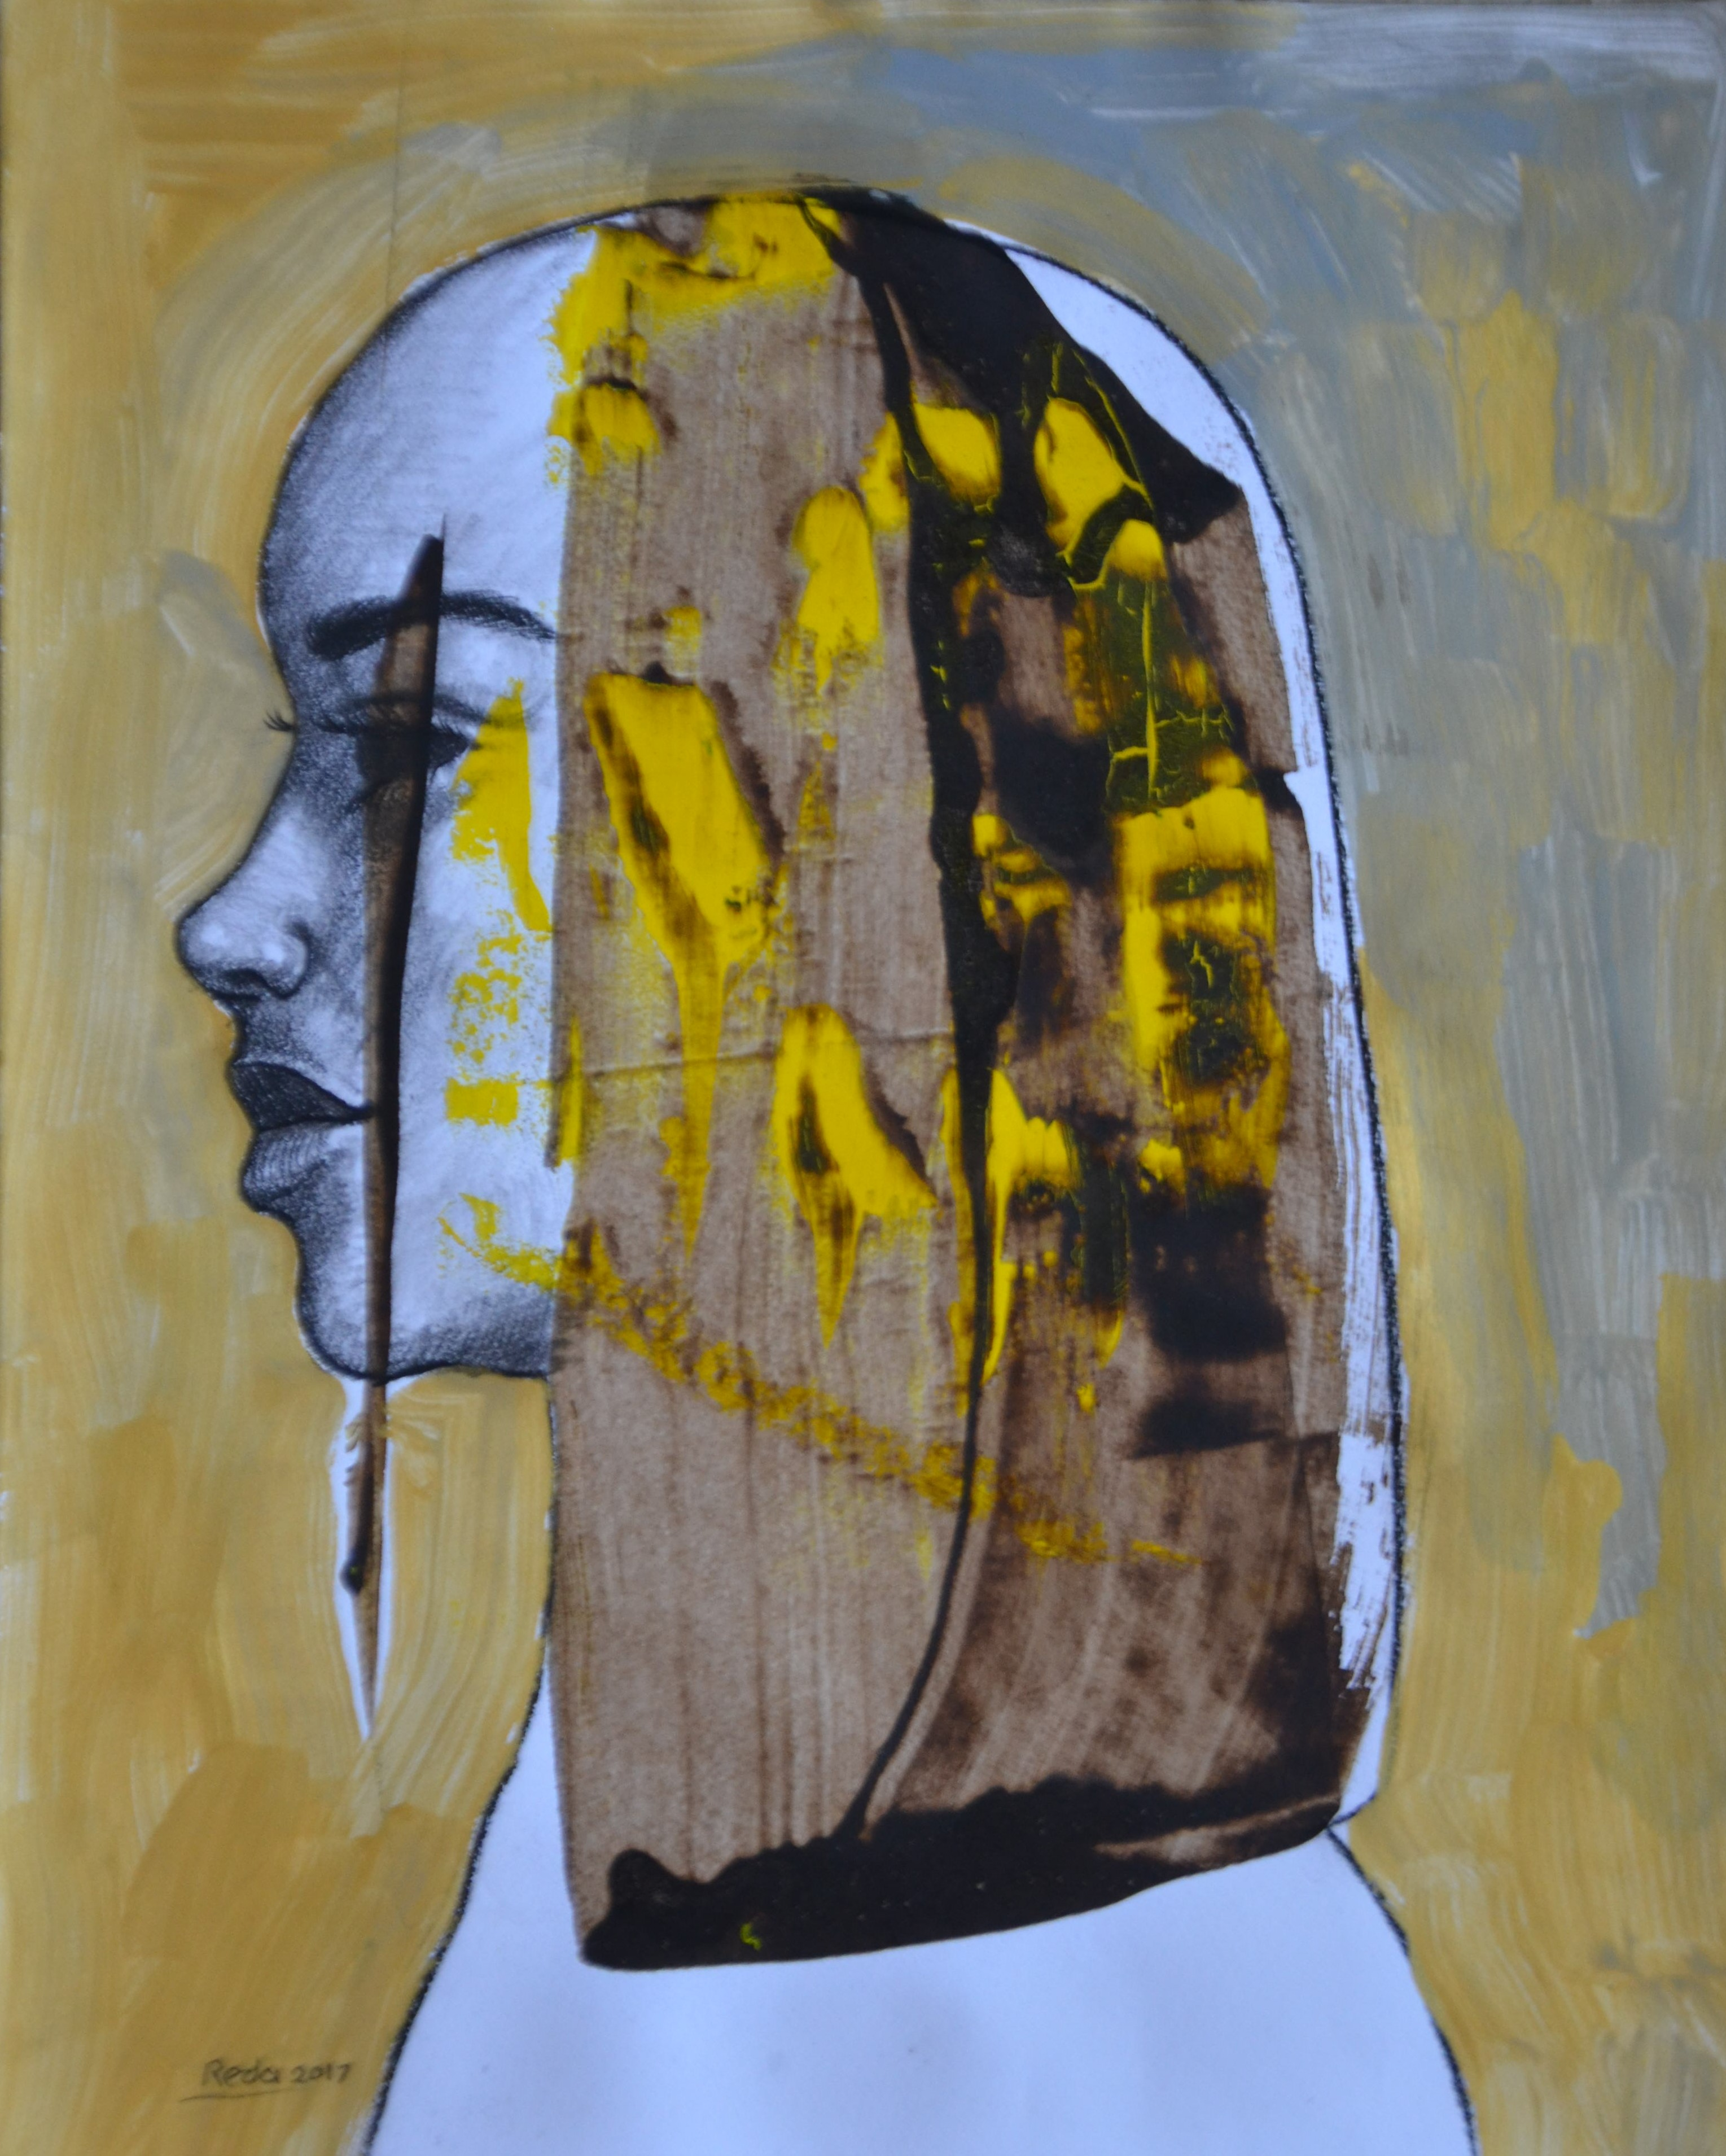 2 From my Memory acrylic, tempera and gold leaf on paper, 24 pieces 17 x 14 Inch each, 2017